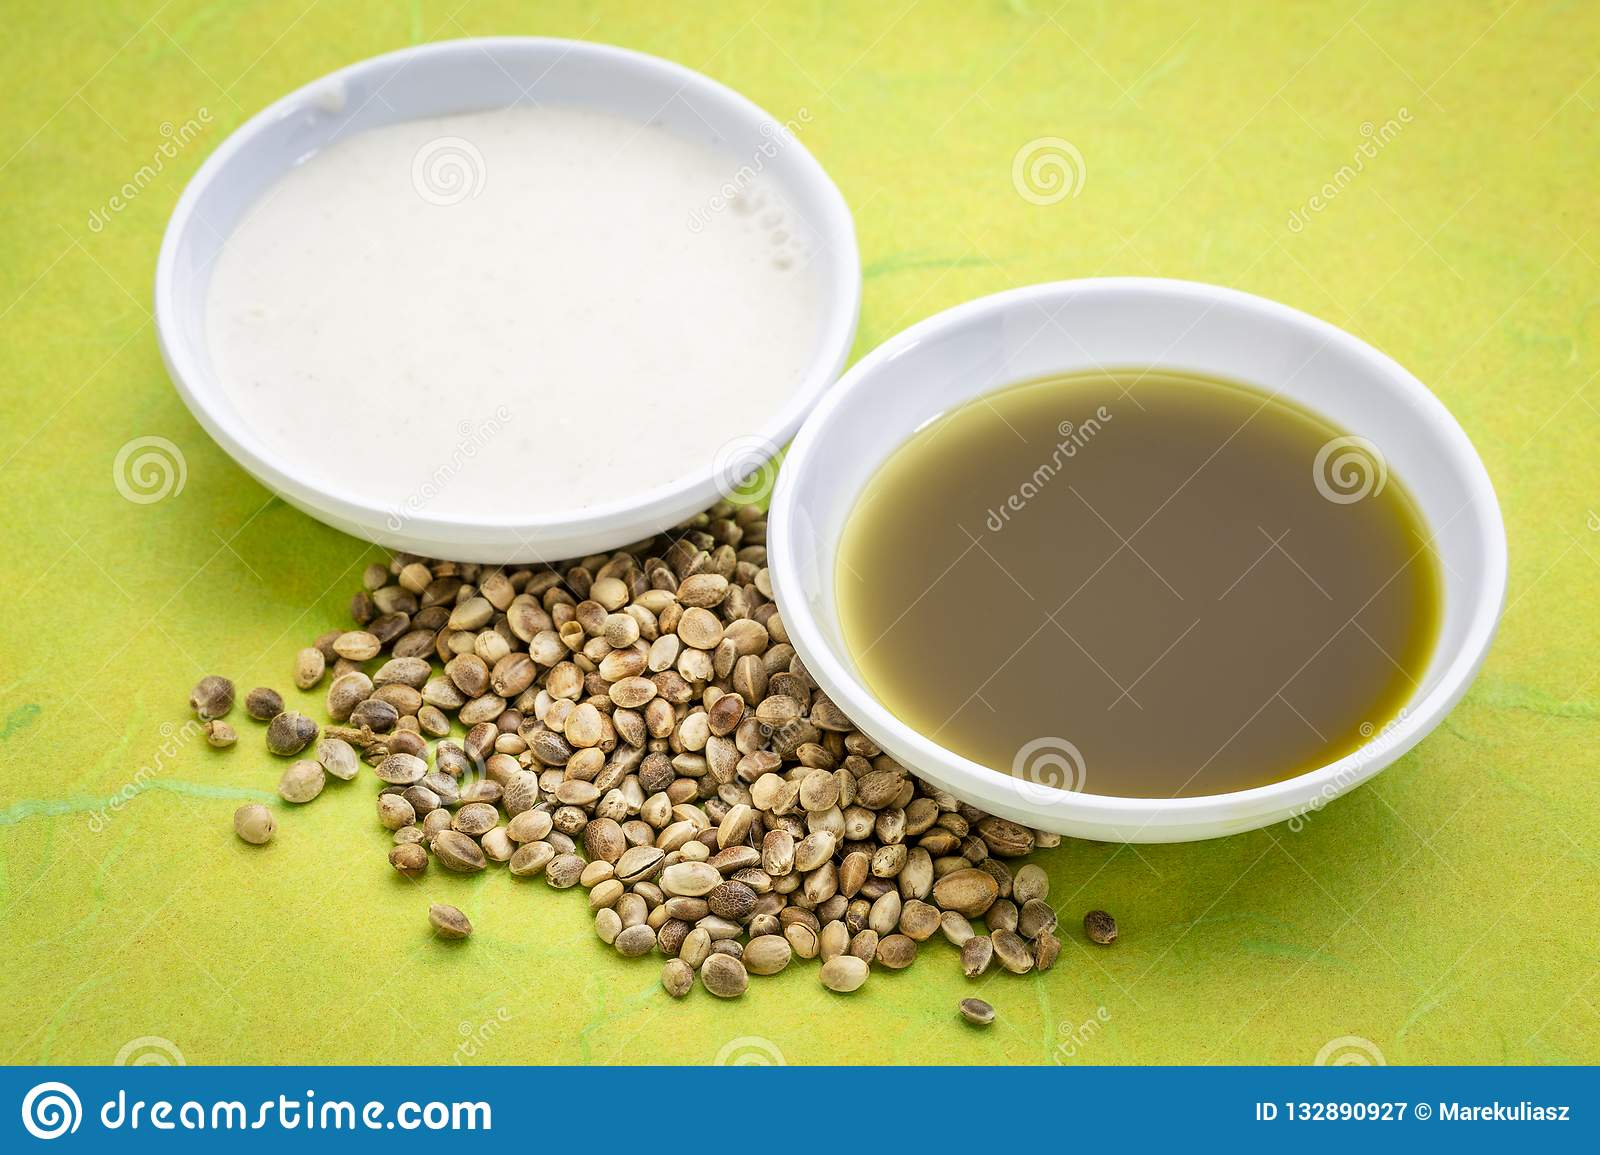 Hemp seeds, oil and milk stock image  Image of bowl - 132890927